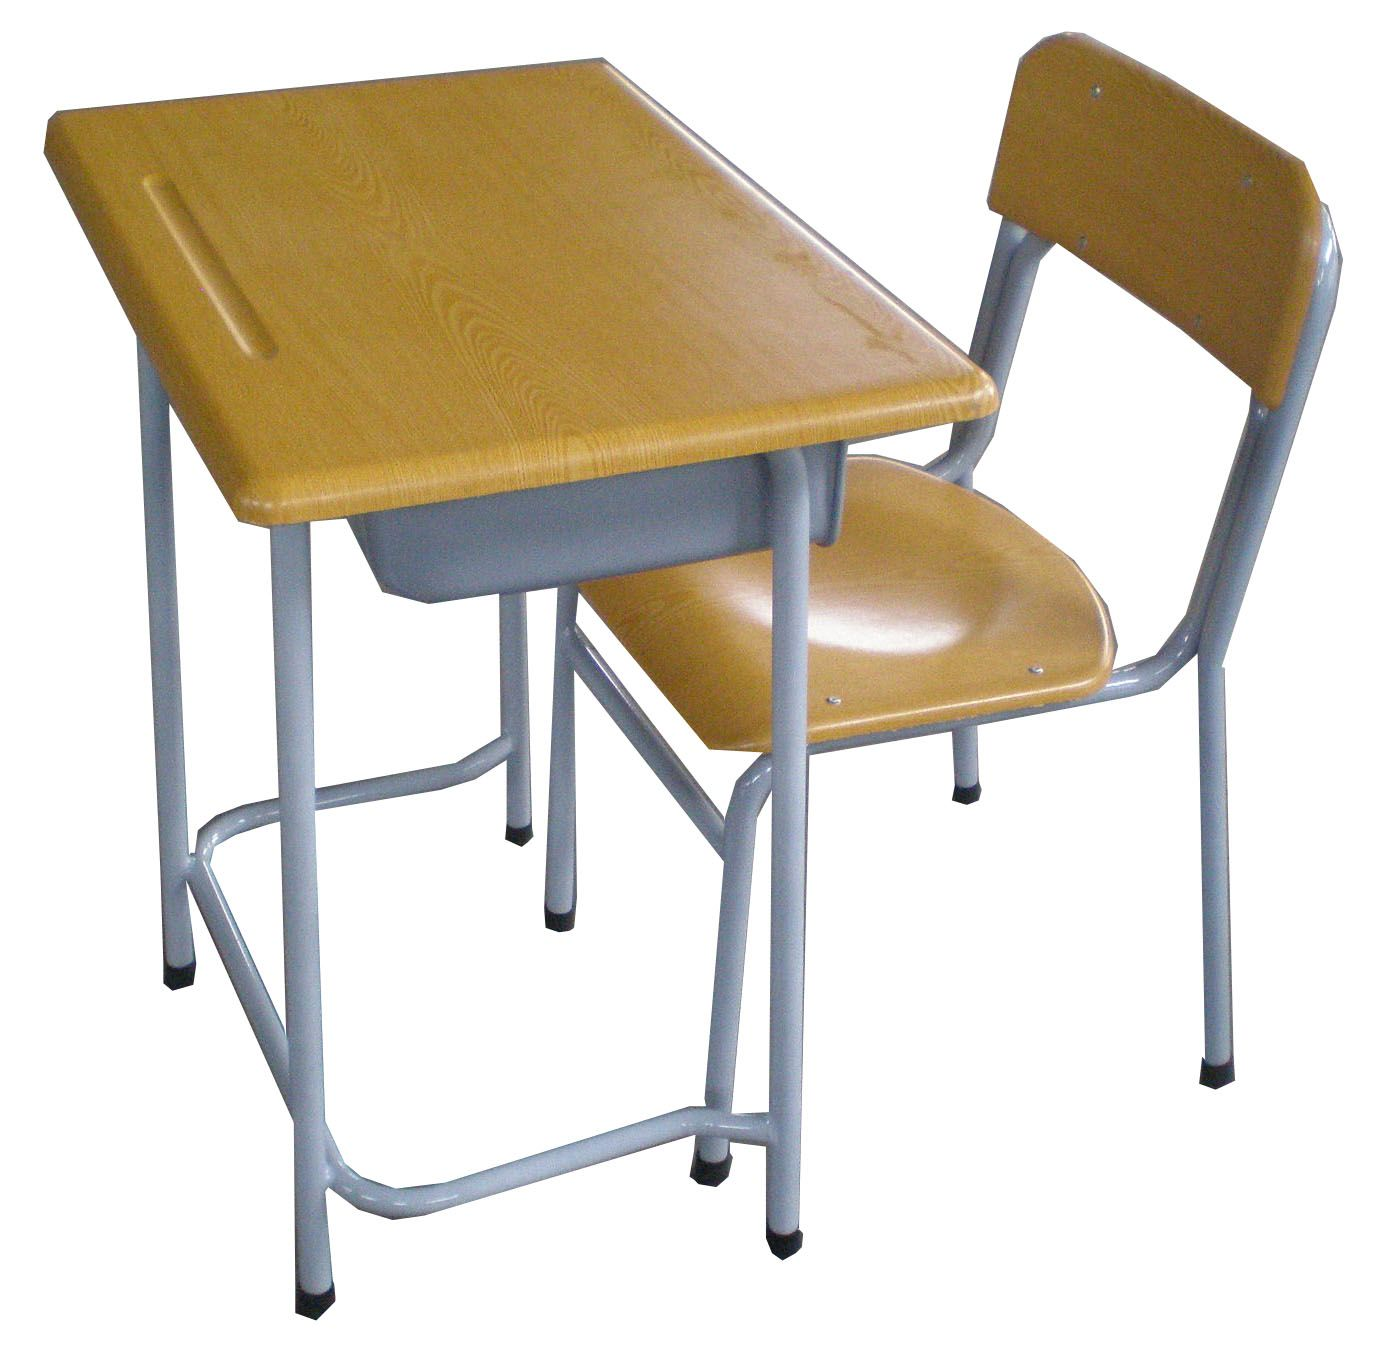 Chair clipart school desk chair. Chairs benches and desks